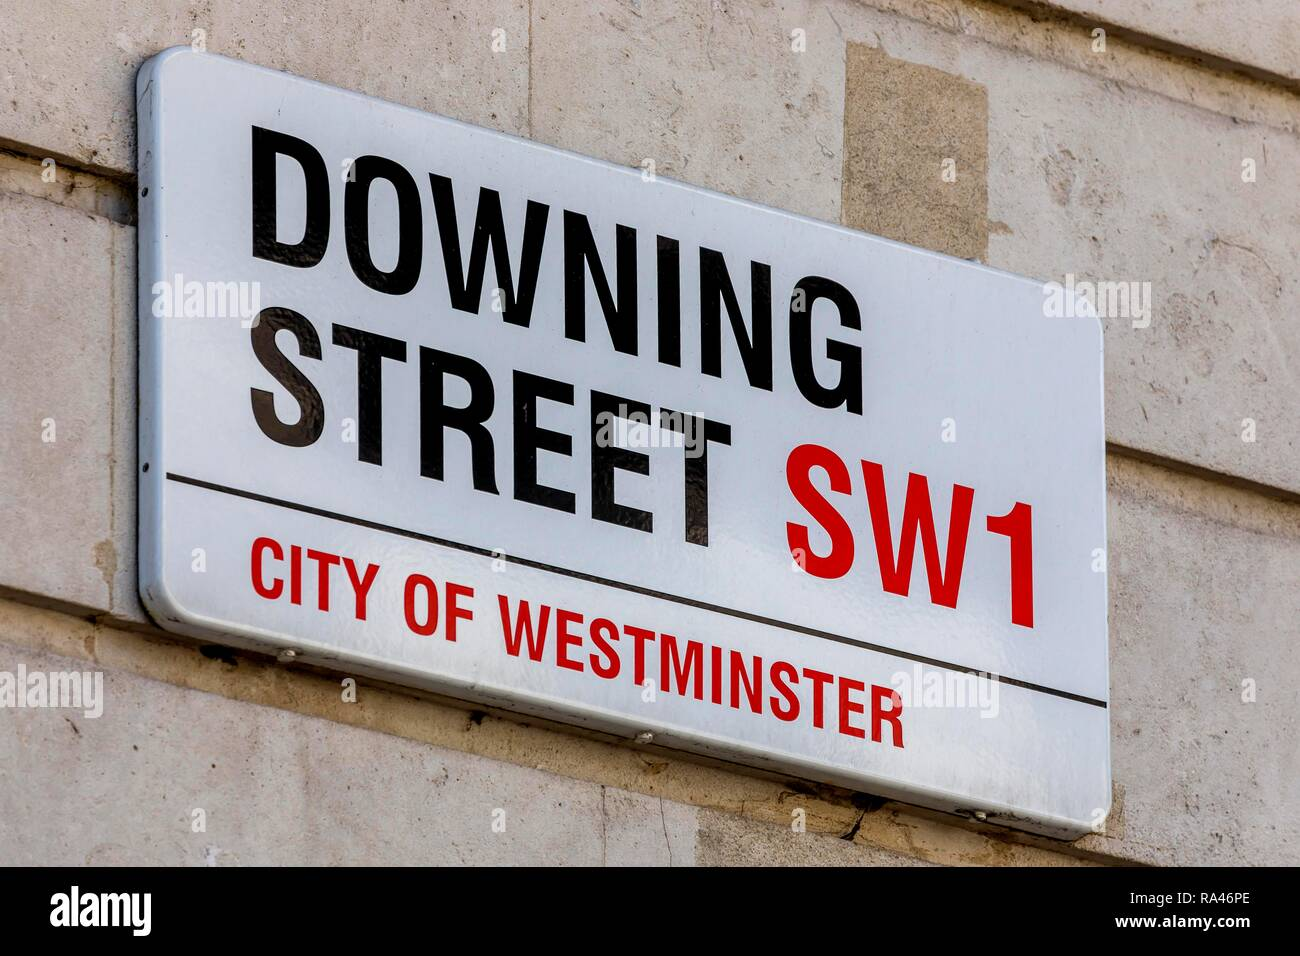 Road sign Downing Street, Government District, Westminster, London, United Kingdom - Stock Image